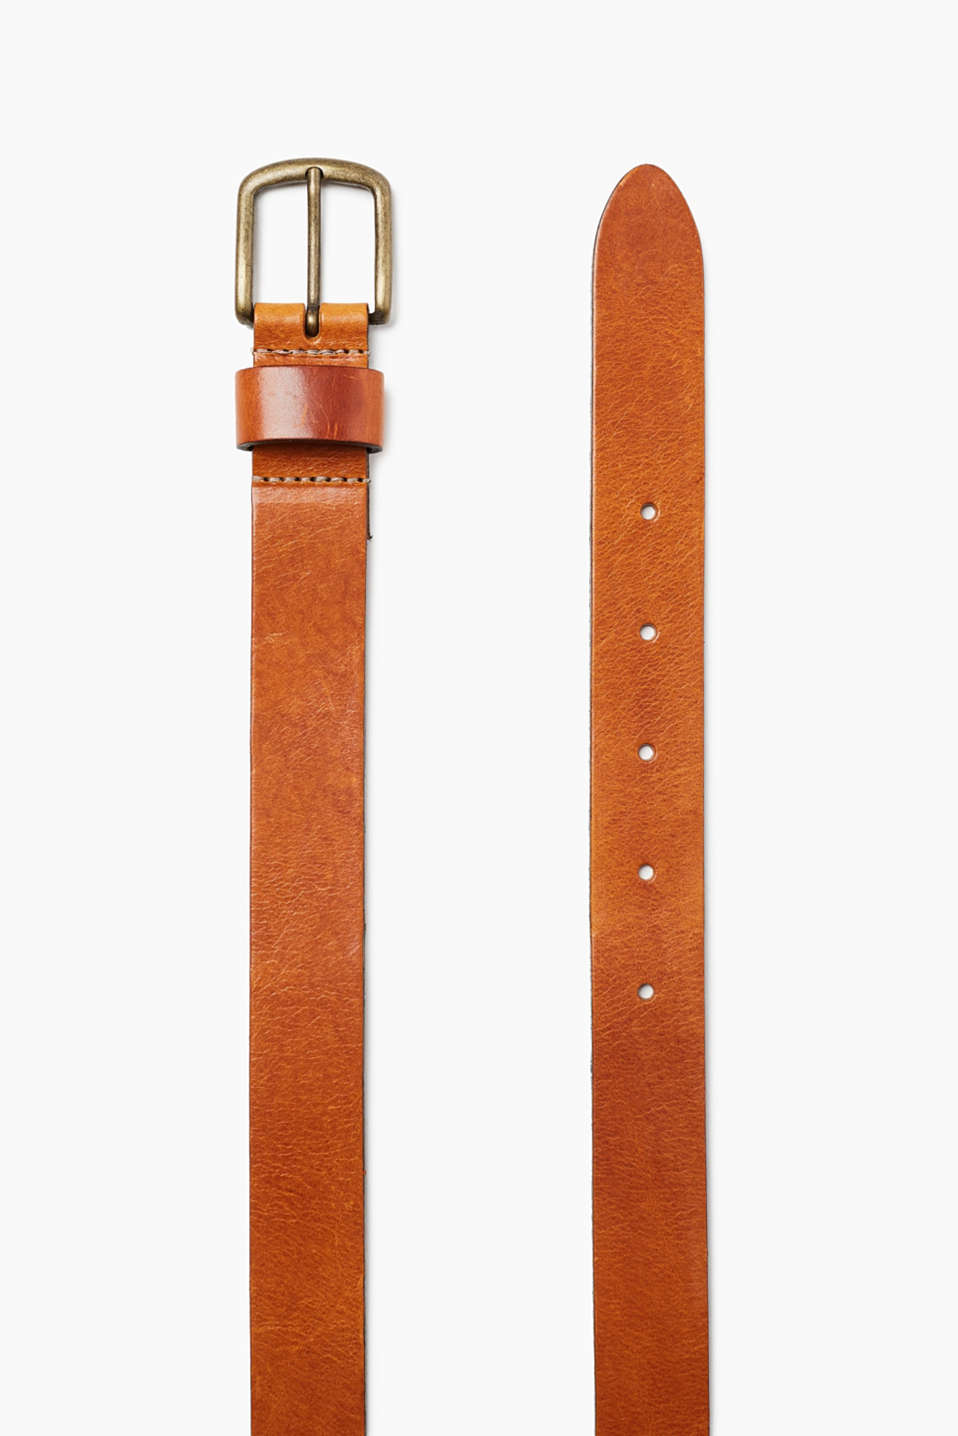 In pure buffalo leather: belt with a matte-polished metal buckle